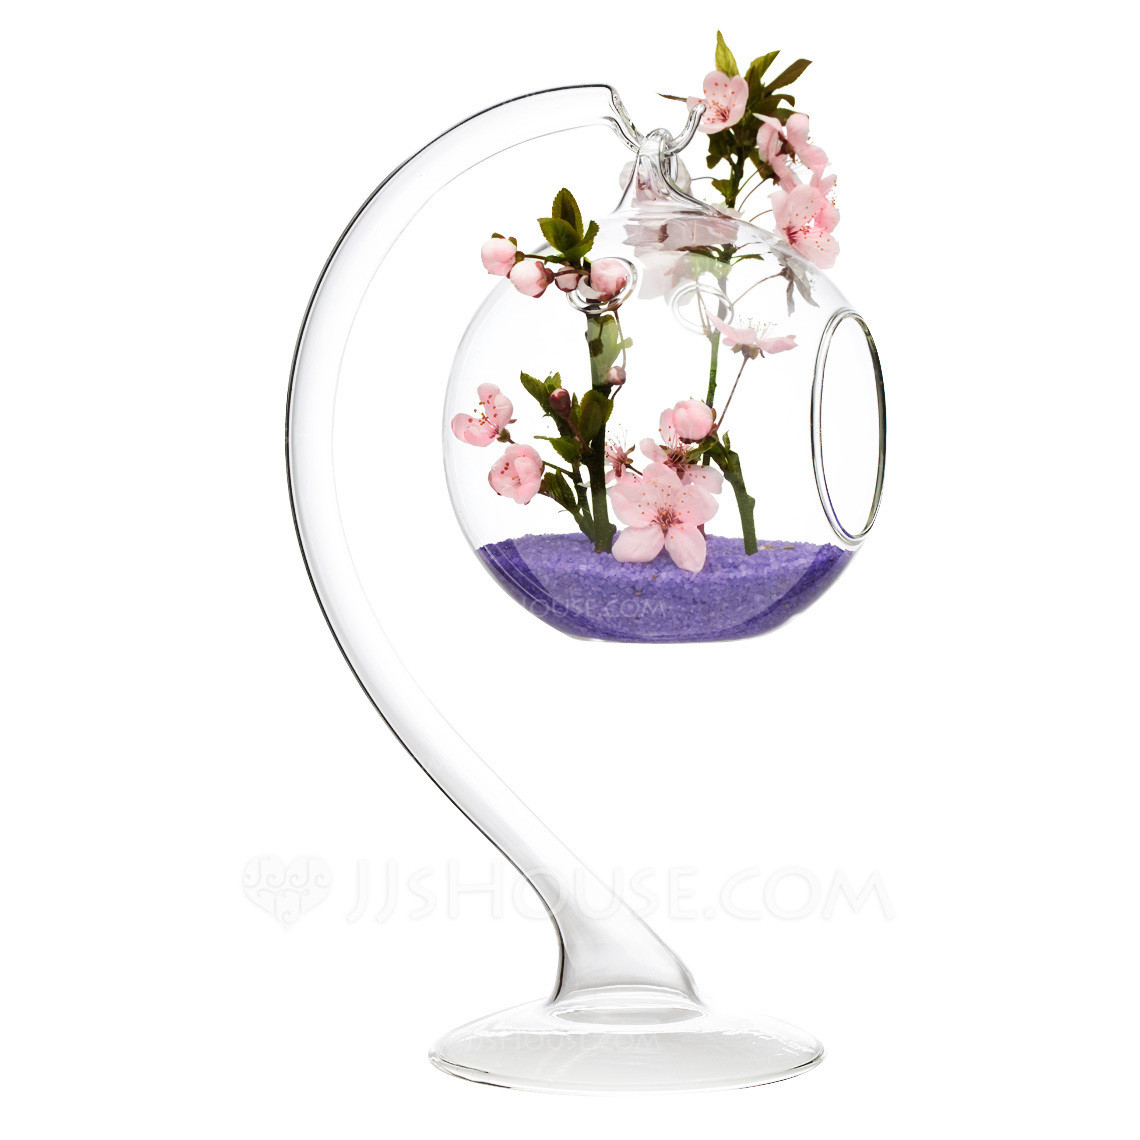 hanging glass ball vase of table centerpieces wedding table centerpieces online jjs house throughout artistic nice hanging glass vase